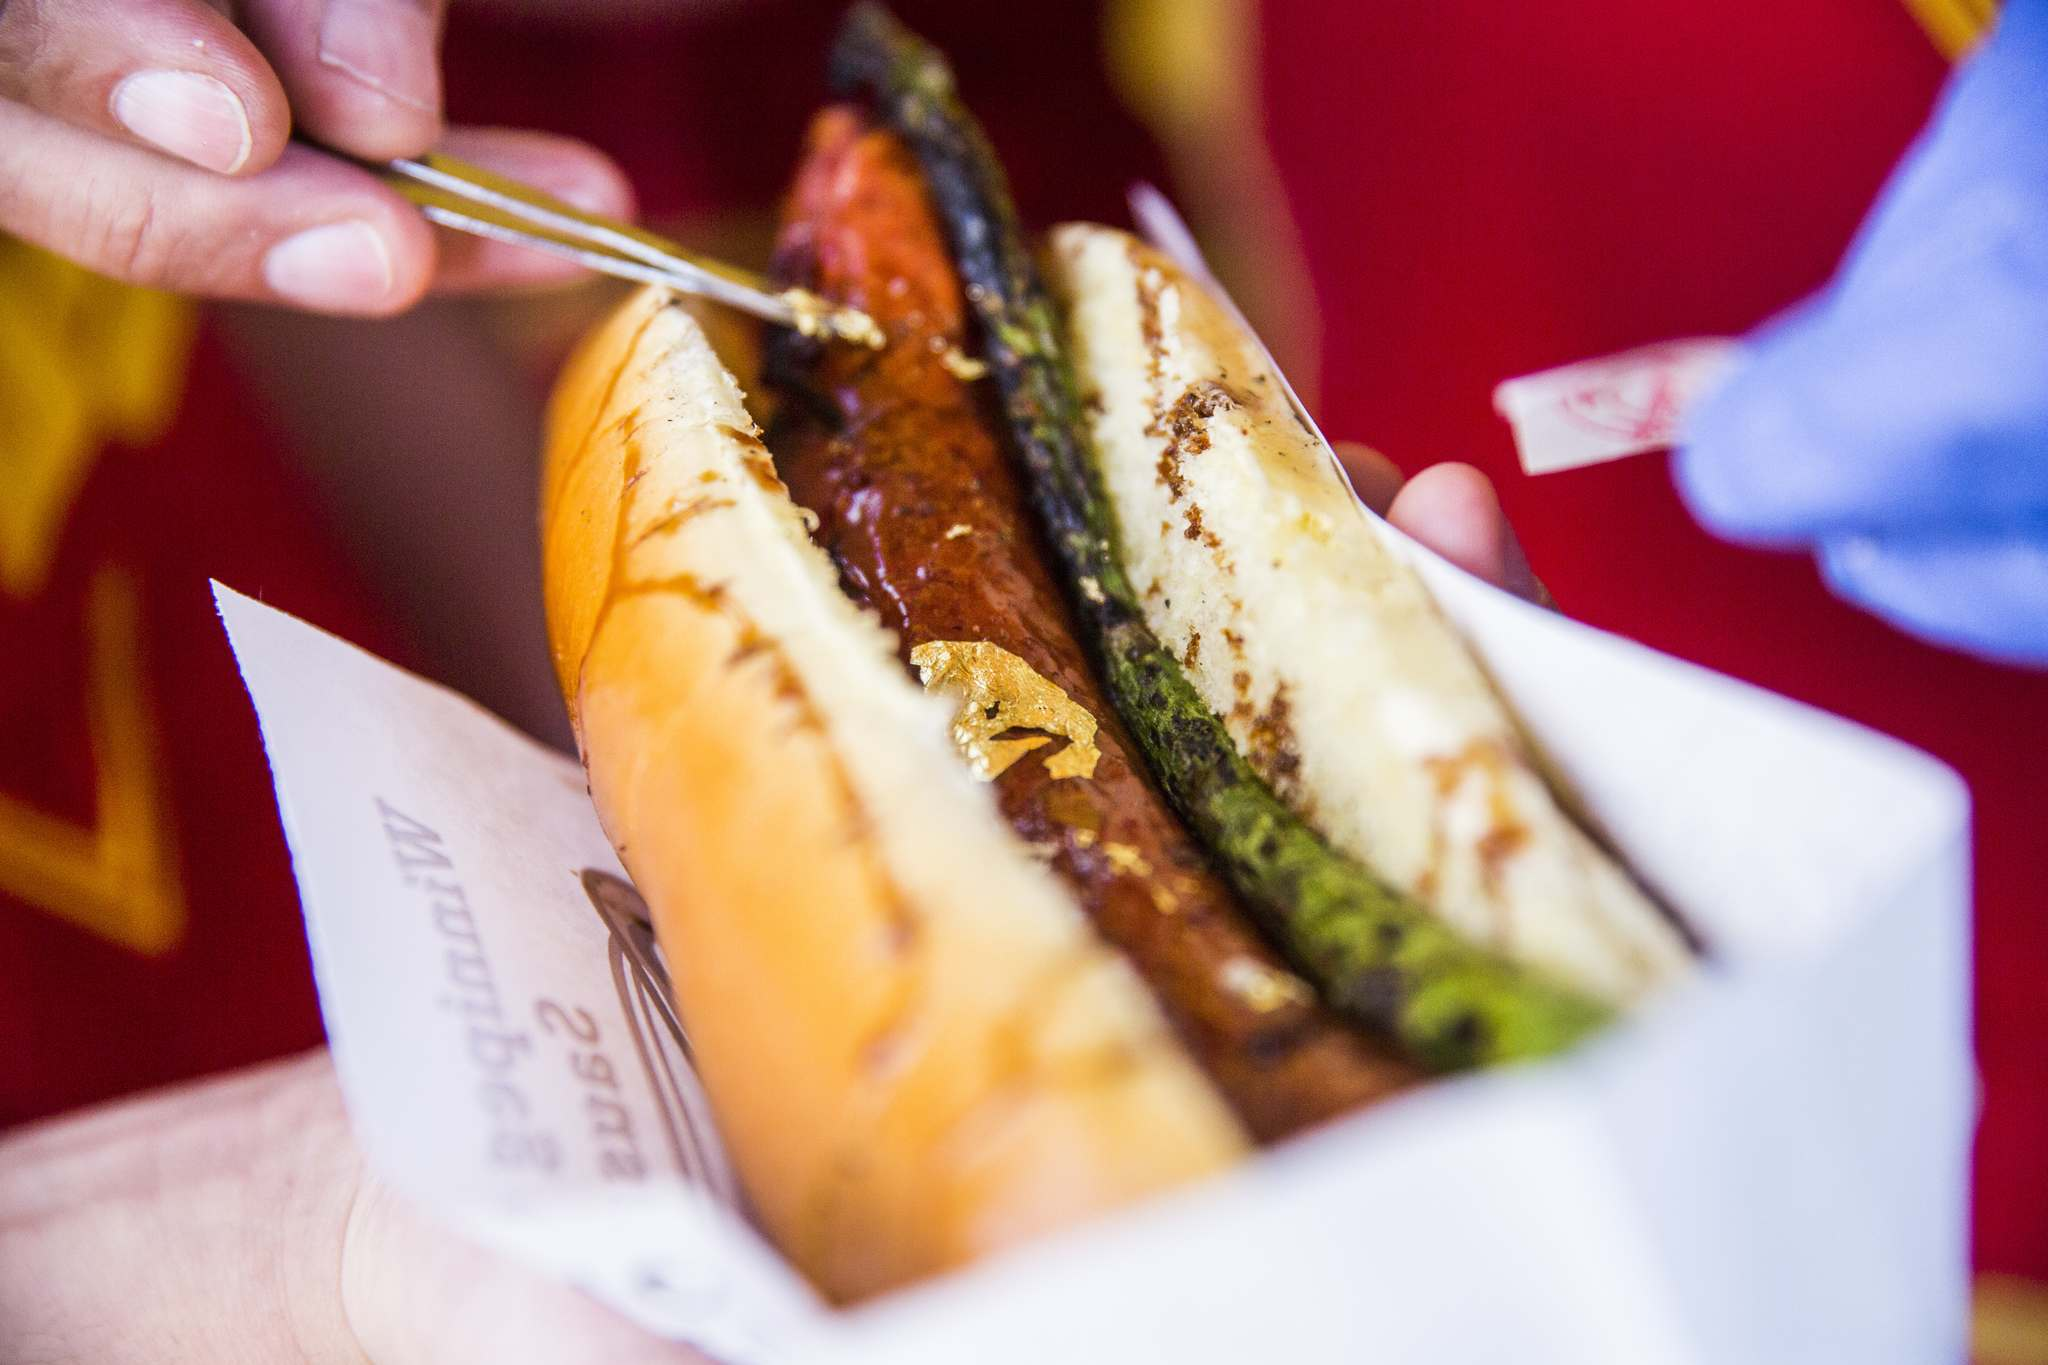 MIKAELA MACKENZIE / WINNIPEG FREE PRESS</p><p>The $100 golden smokie is topped with truffle oil, a balsamic reduction and real gold leaf. A single spear of garlic-flavoured asparagus is also inside the Gunn's Bakery bun.</p>